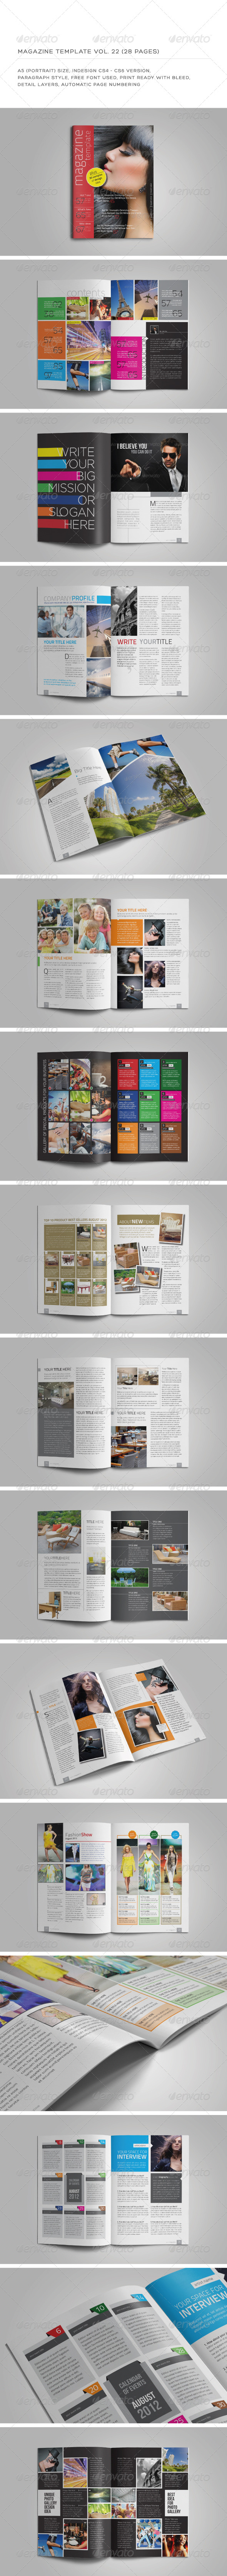 GraphicRiver A5 Portrait 28 Pages MGZ Vol 22 5837020